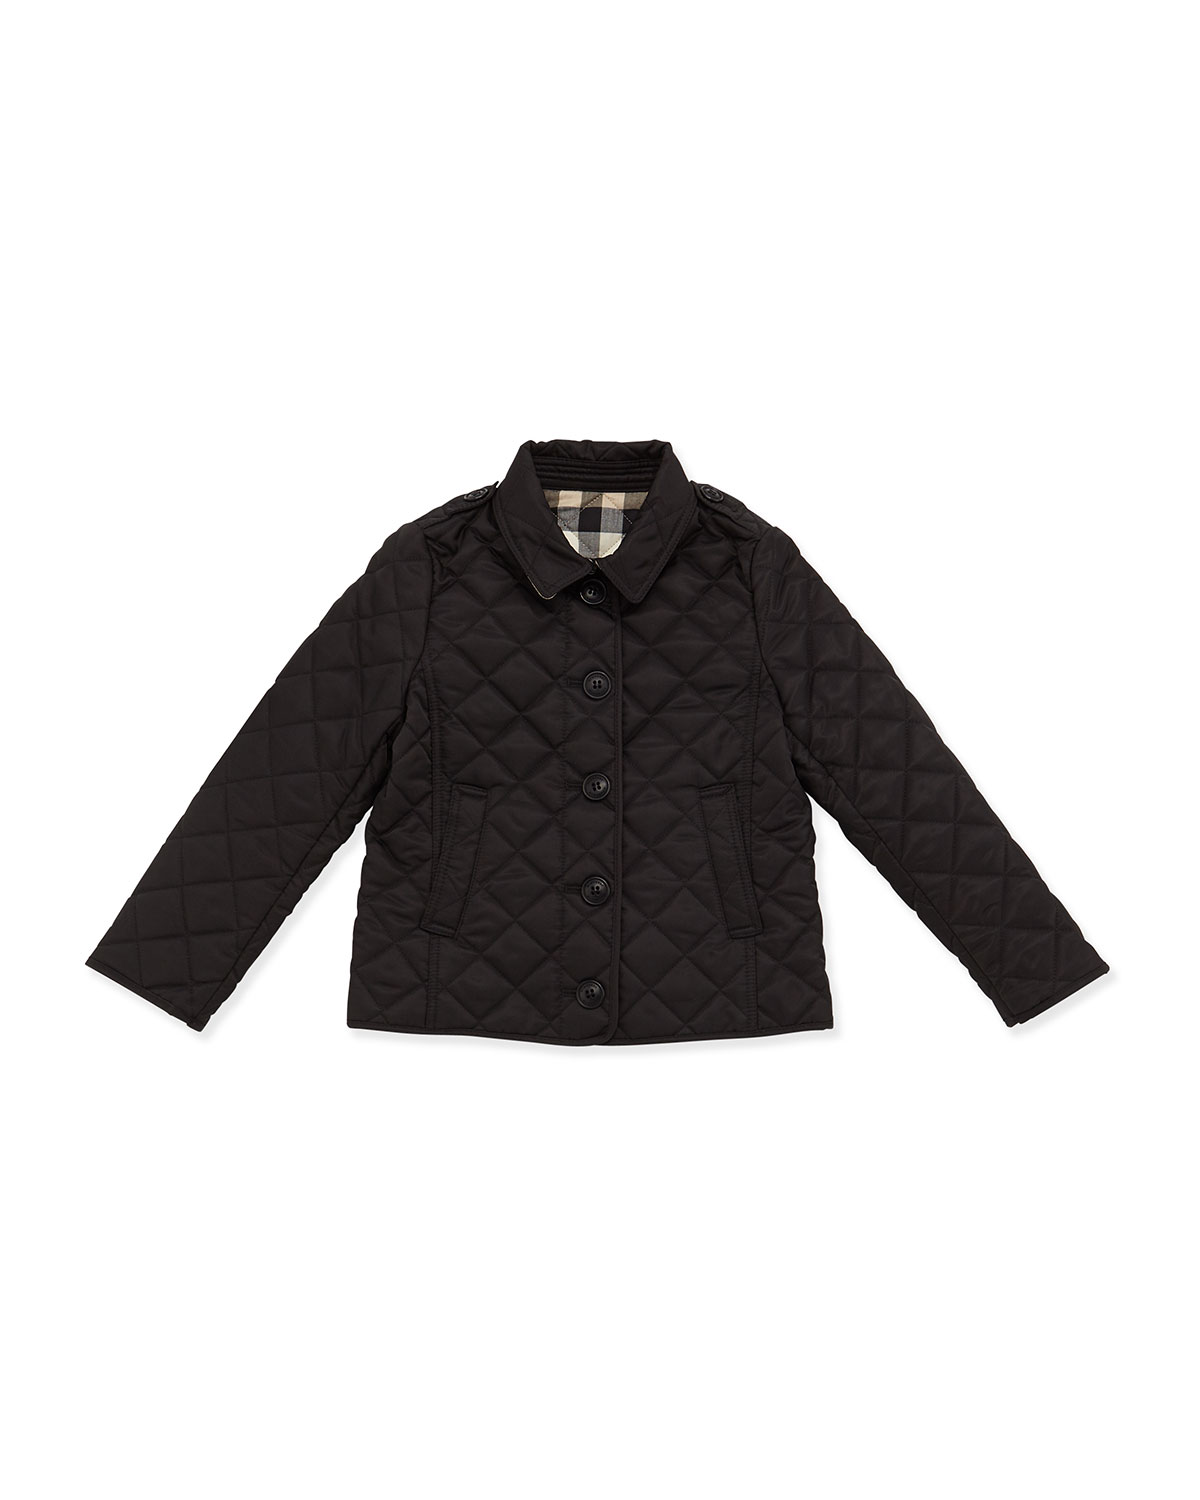 Burberry Ashurst Quilted Button Front Jacket Black Size